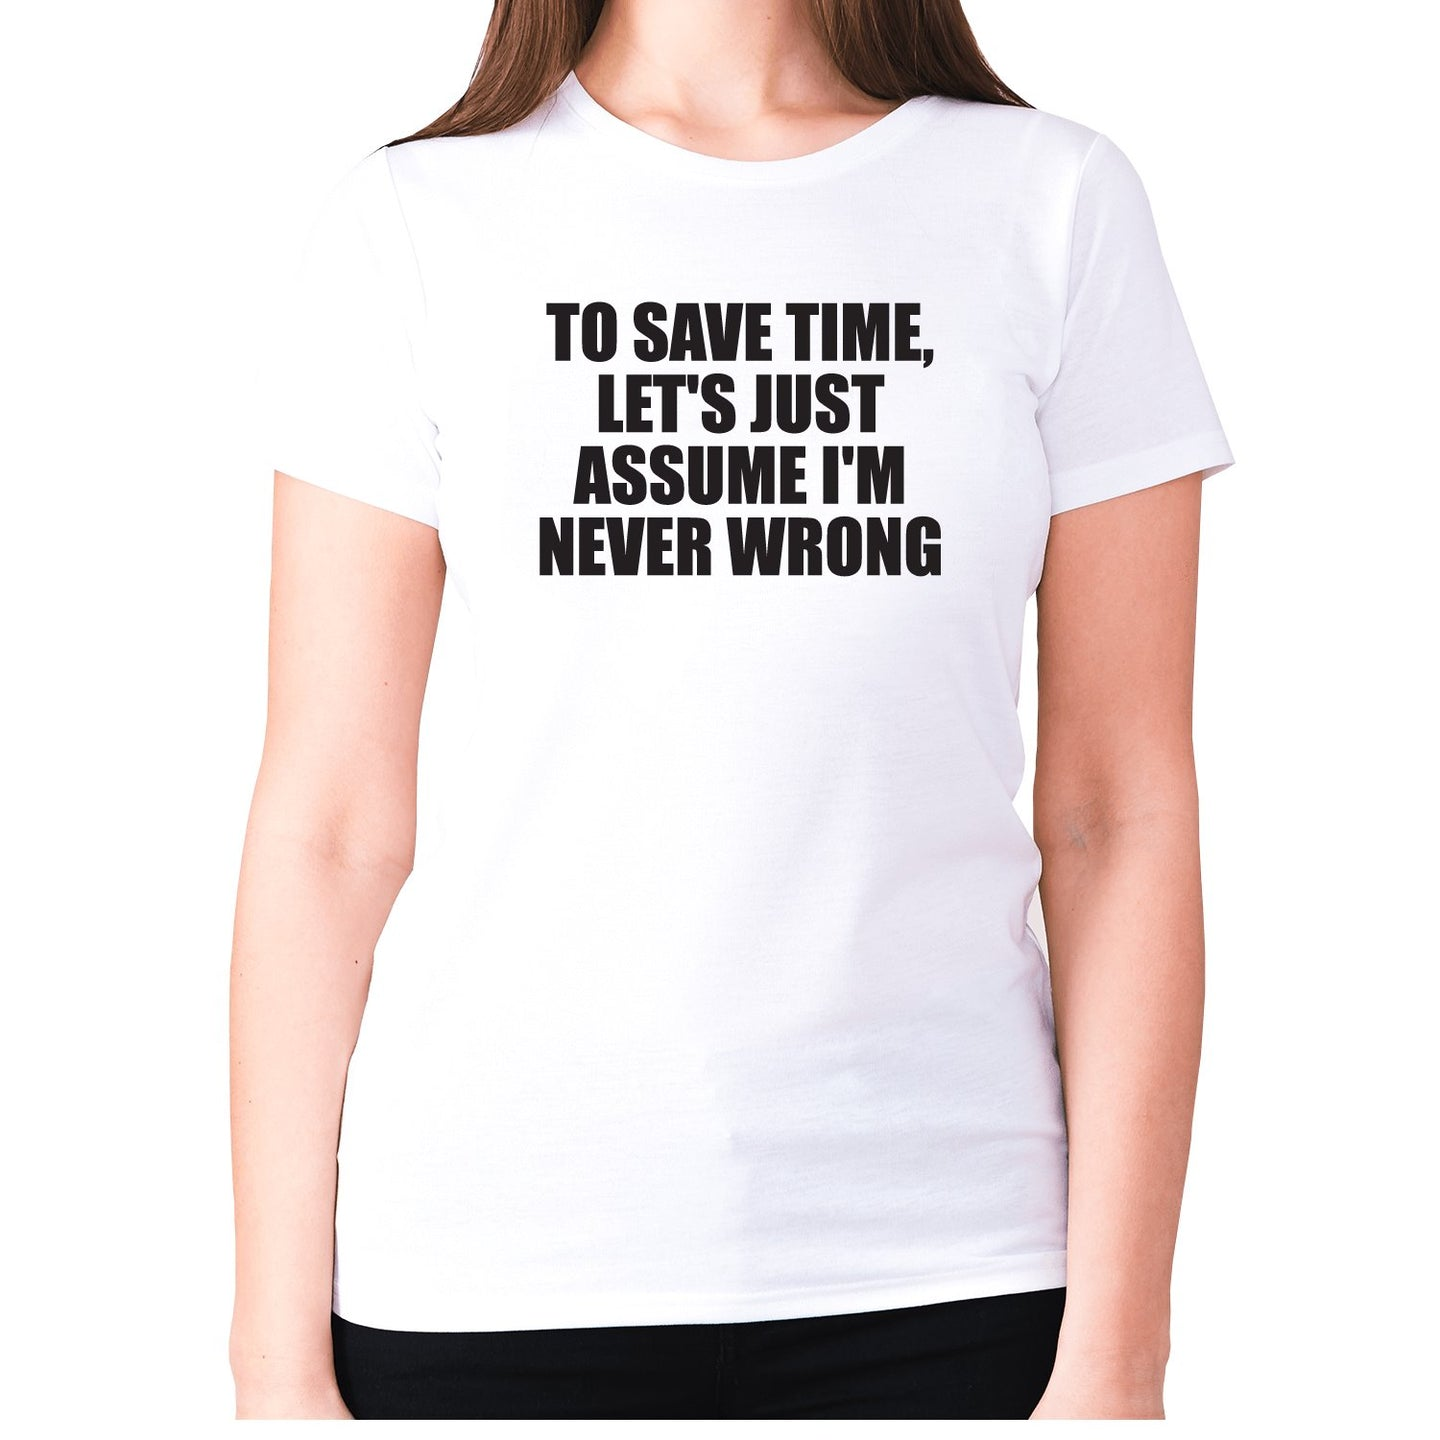 To save time, let's just assume I'm never wrong - women's premium t-shirt - White / S - Graphic Gear